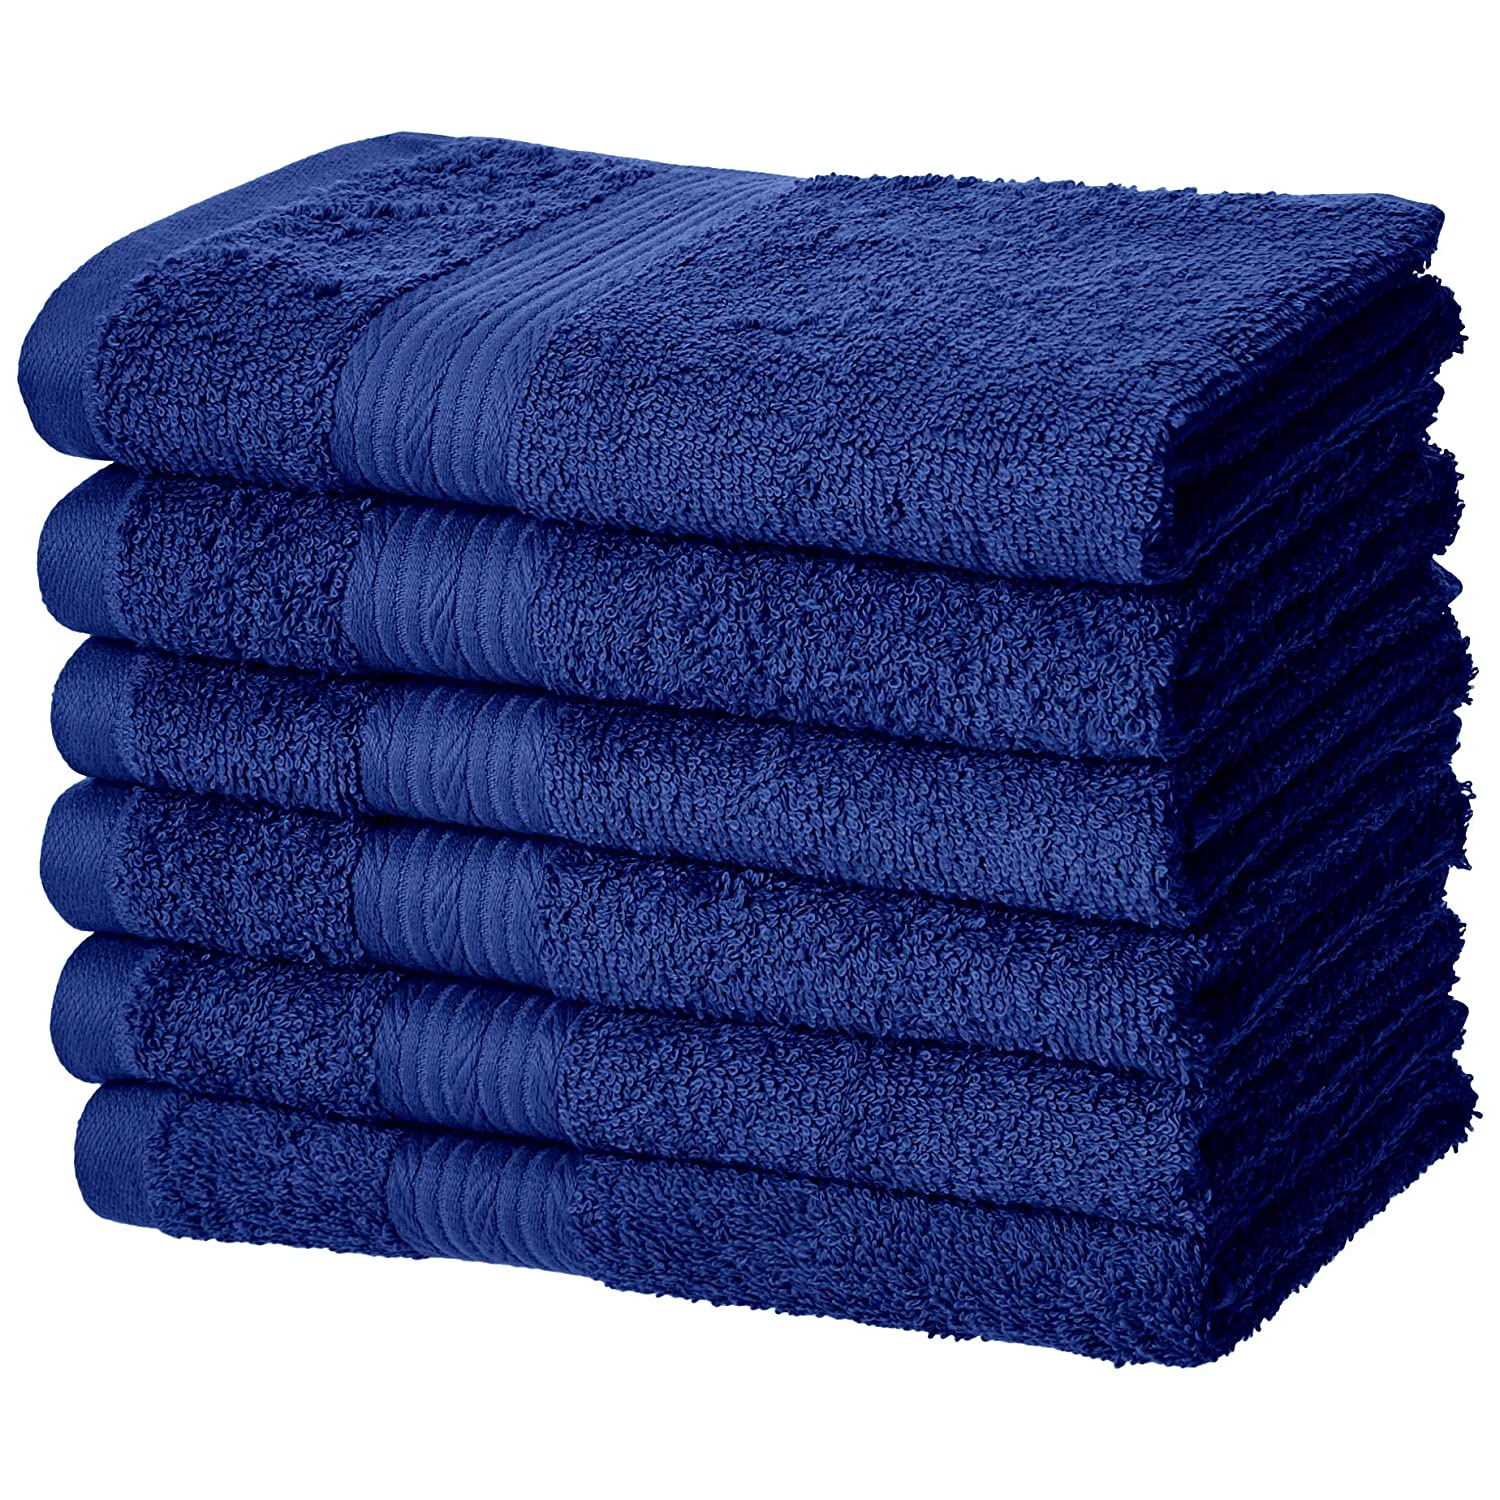 AmazonBasics Fade-Resistant Cotton Hand Towel - 6-Pack, Navy Blue